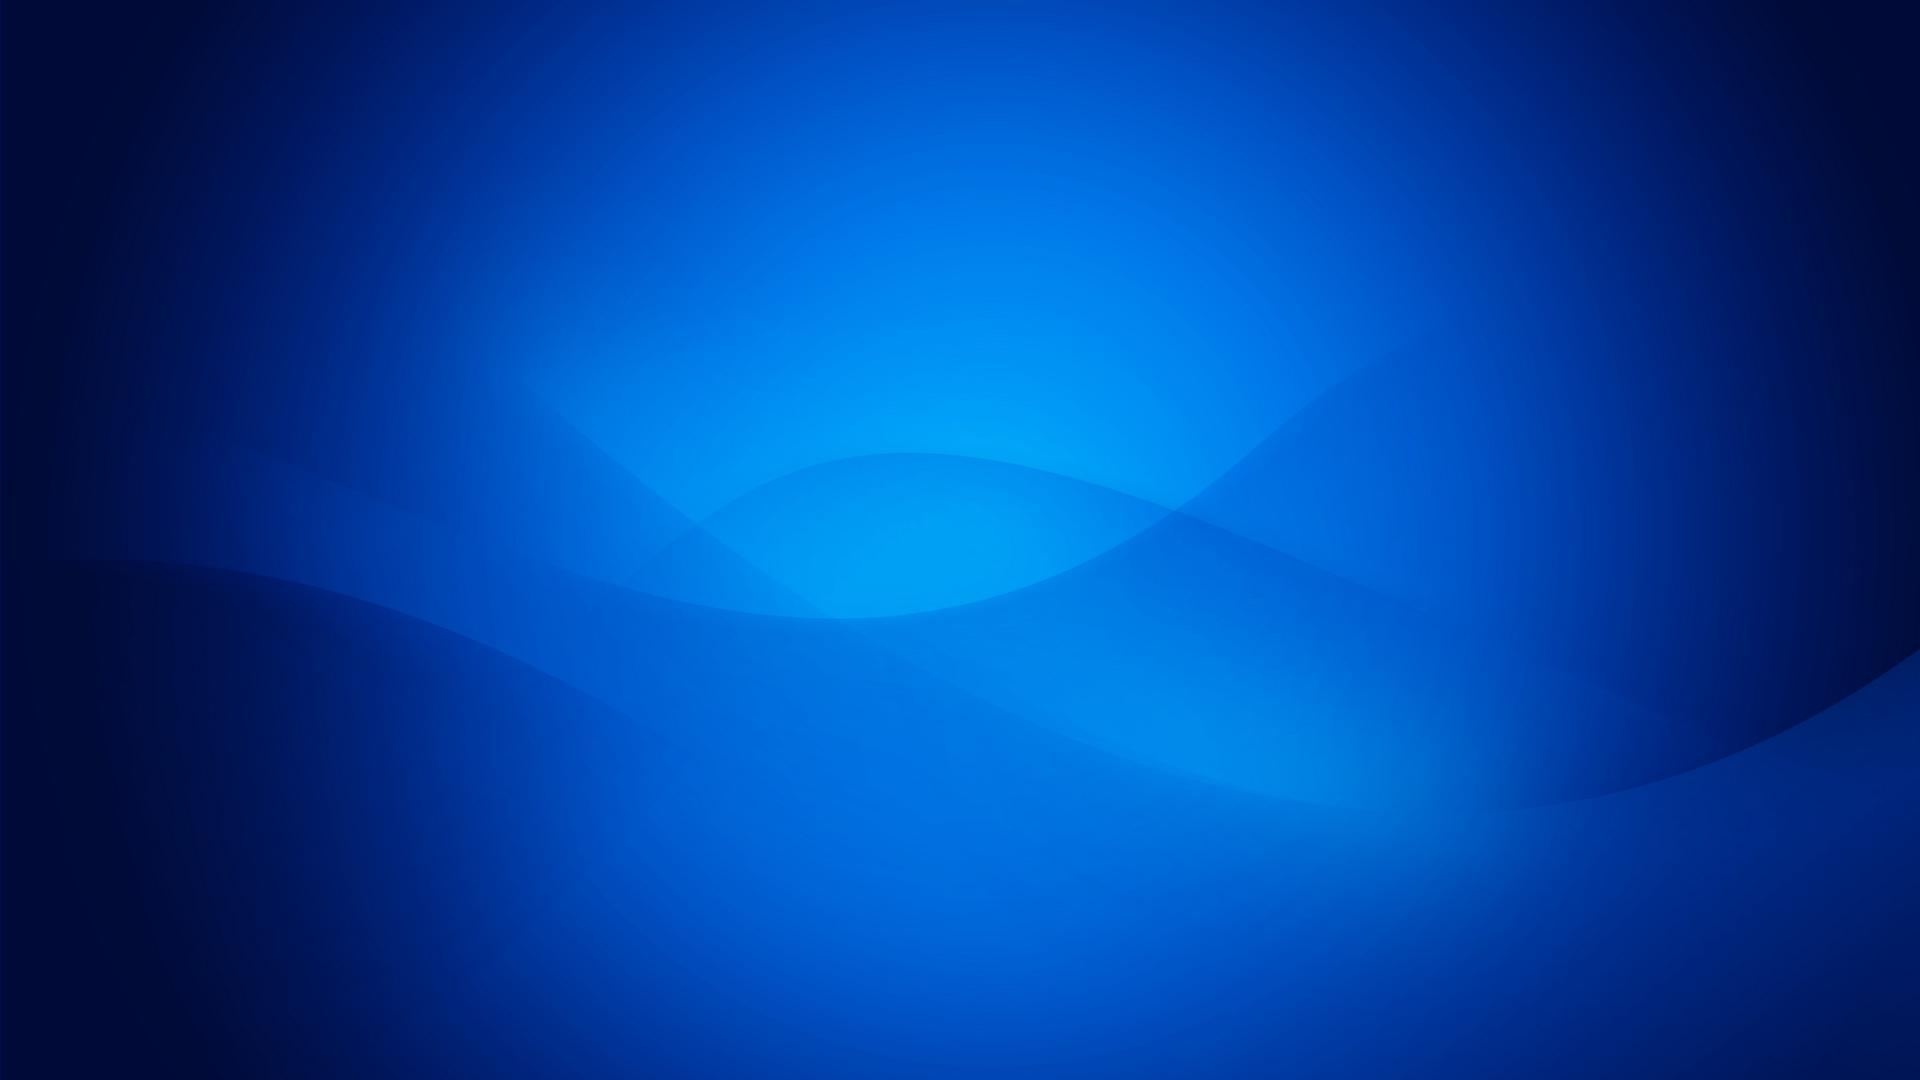 30 HD Blue WallpapersBackgrounds For Download 1920x1080